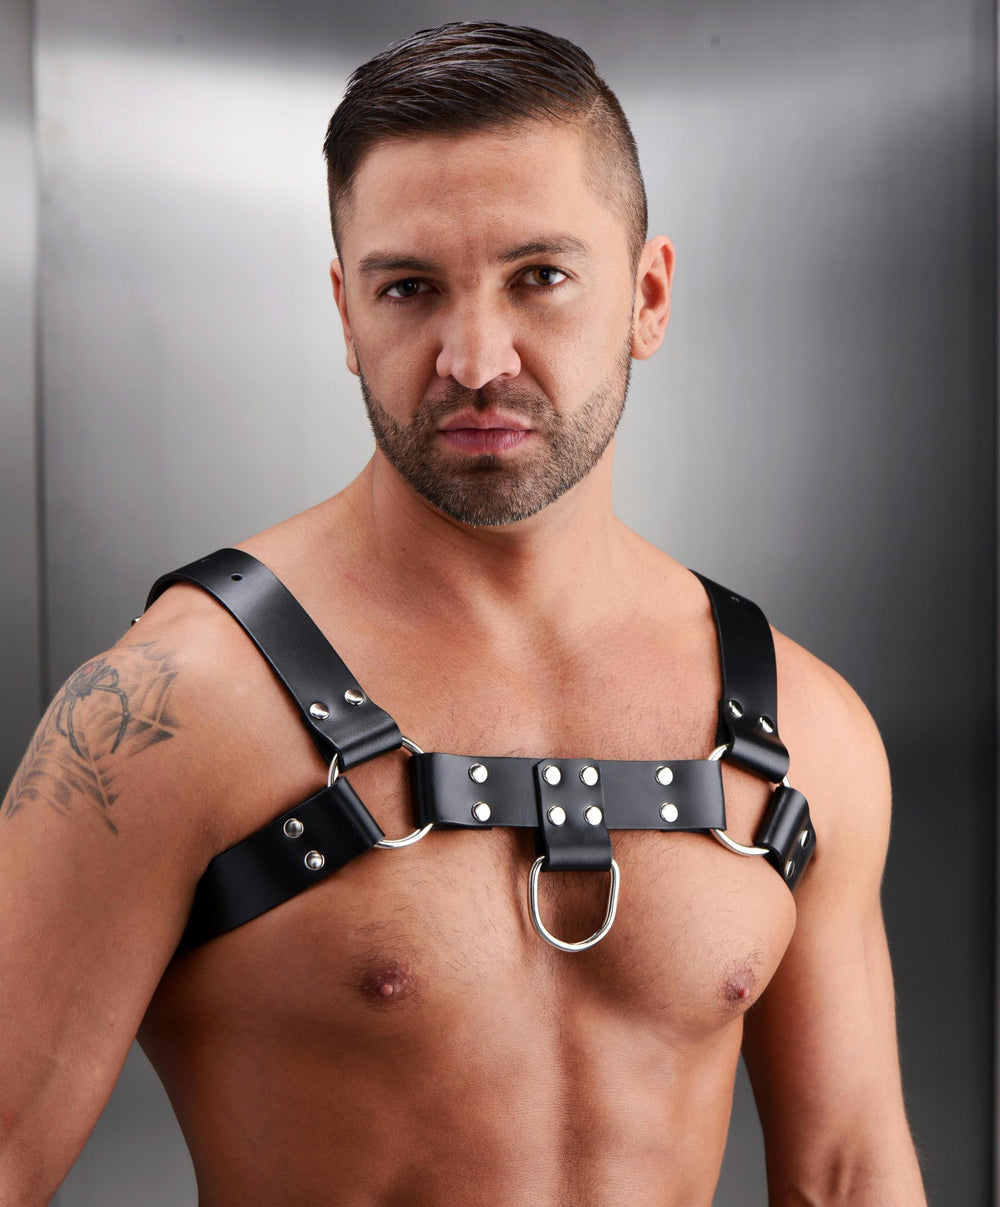 English Bull Dog Harness - Fun and Kinky Sex Toys